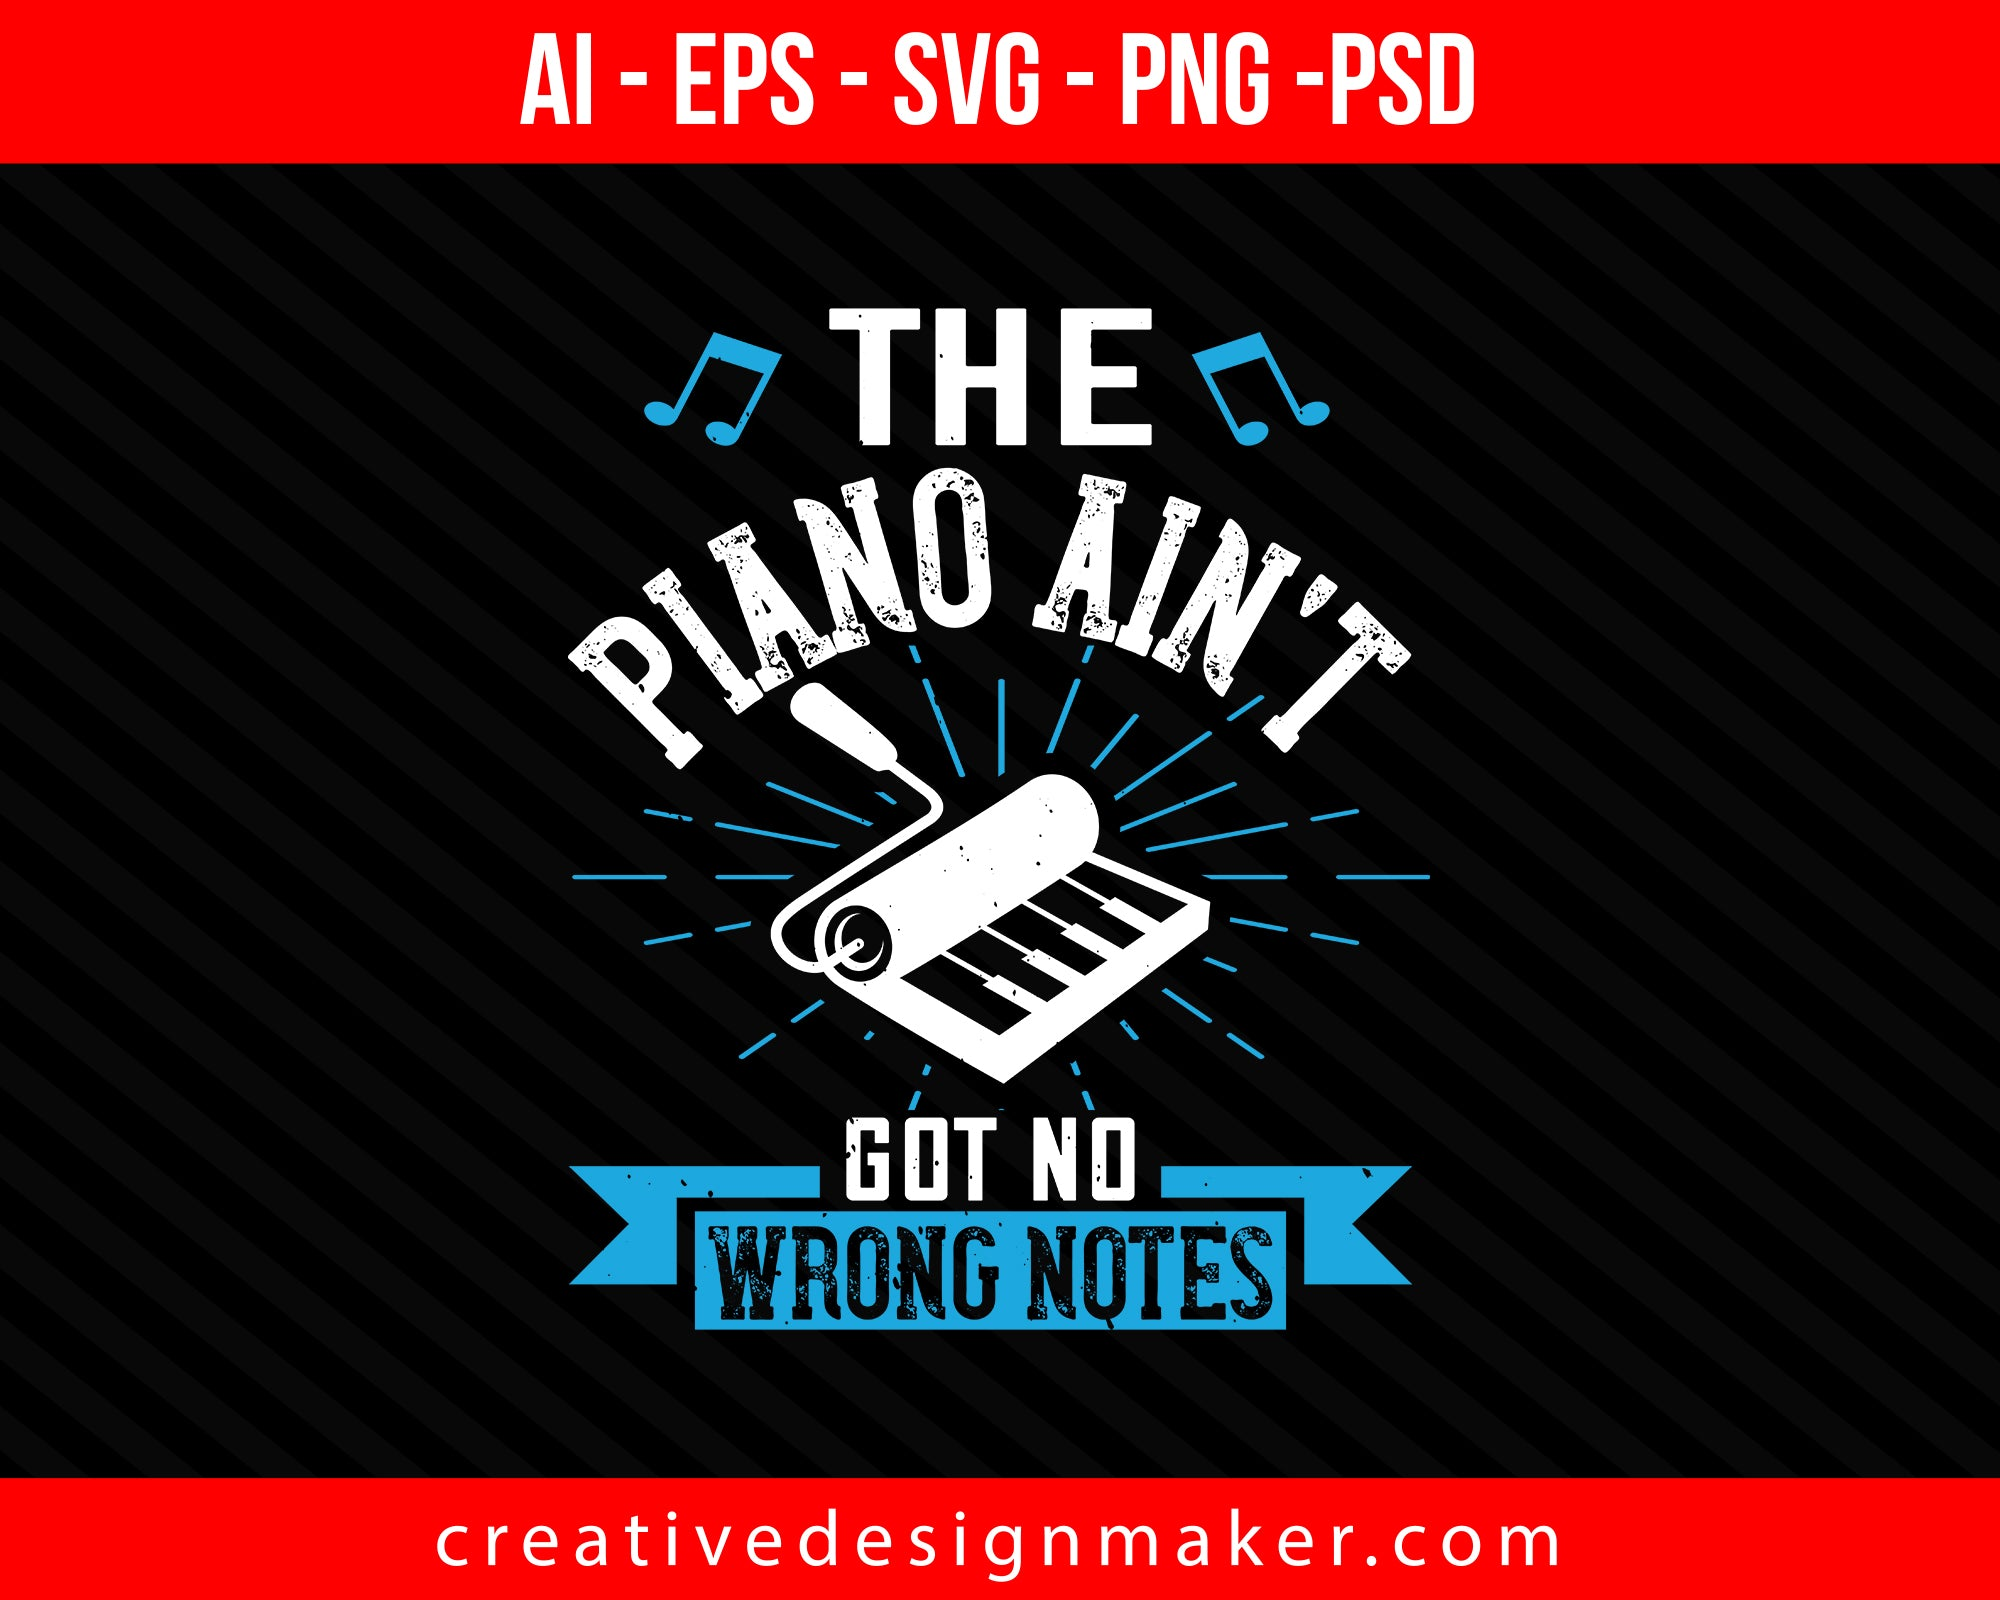 The piano ain't got no wrong notes Print Ready Editable T-Shirt SVG Design!